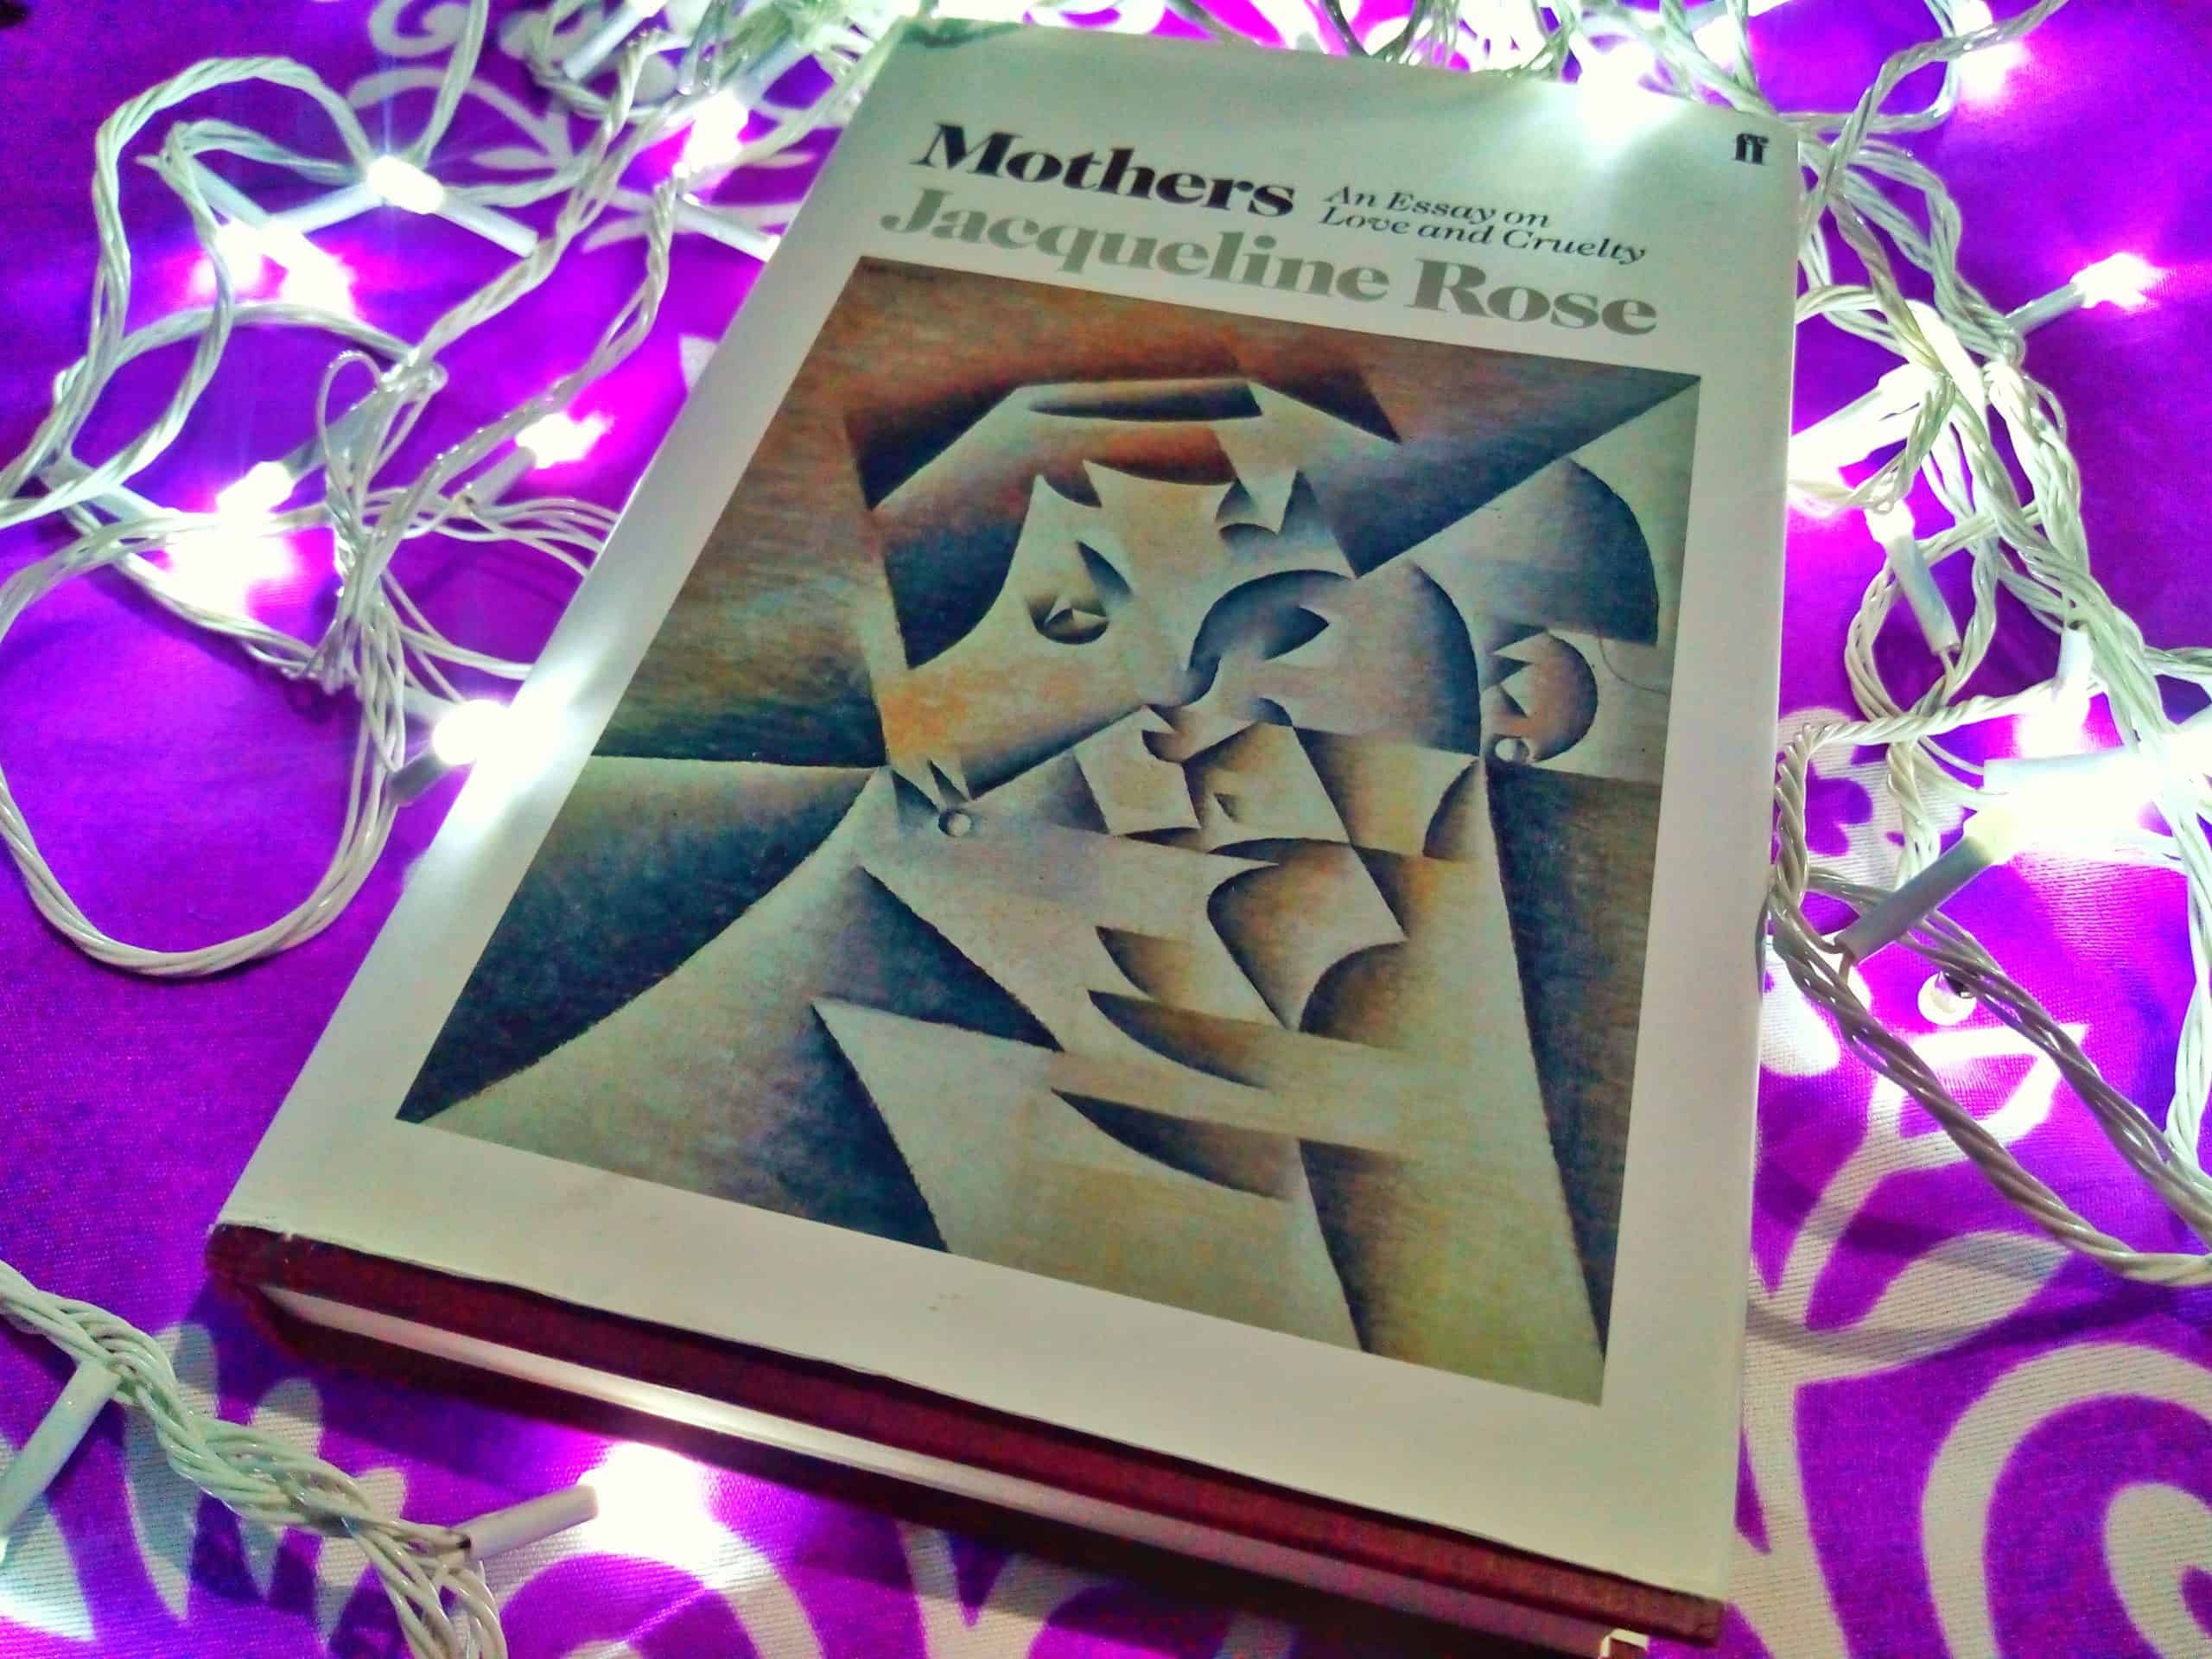 Mothers An Essay On Love And Cruelty By Jacqueline Rose Review